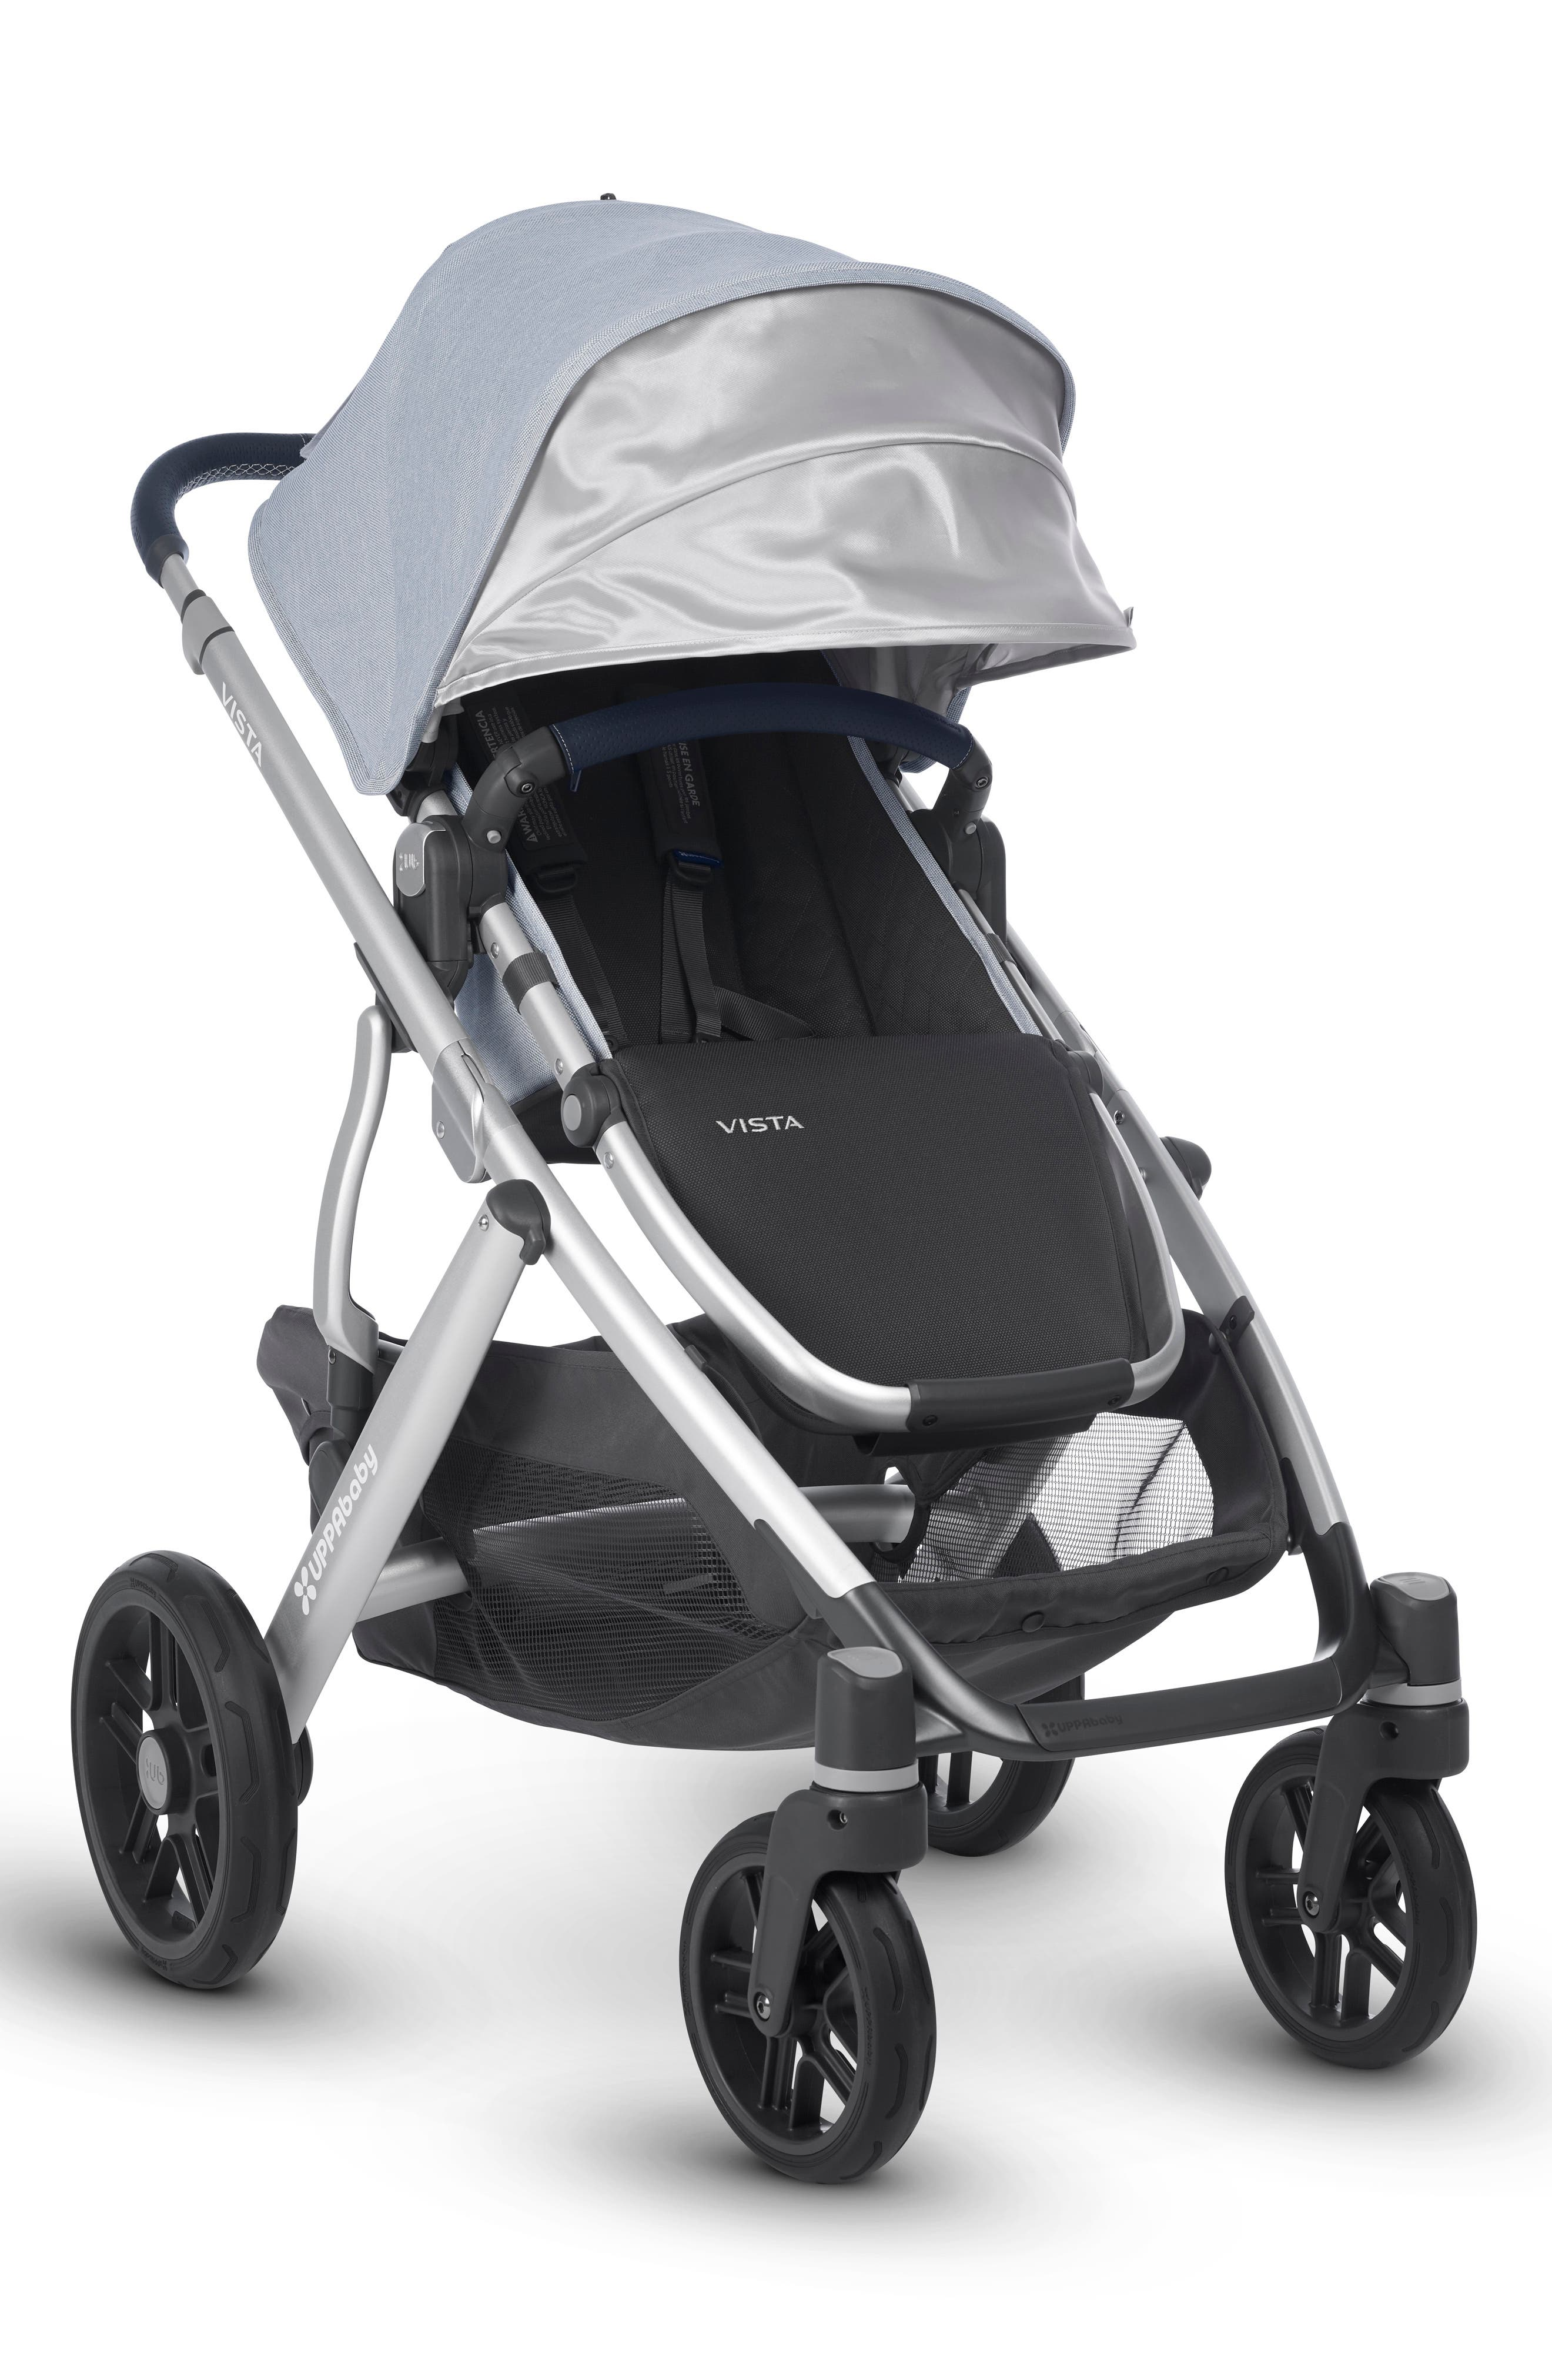 UPPABABY, VISTA Aluminum Frame Convertible Complete Stroller with Leather Trim, Alternate thumbnail 3, color, WILLIAM BLUE/ SILVER